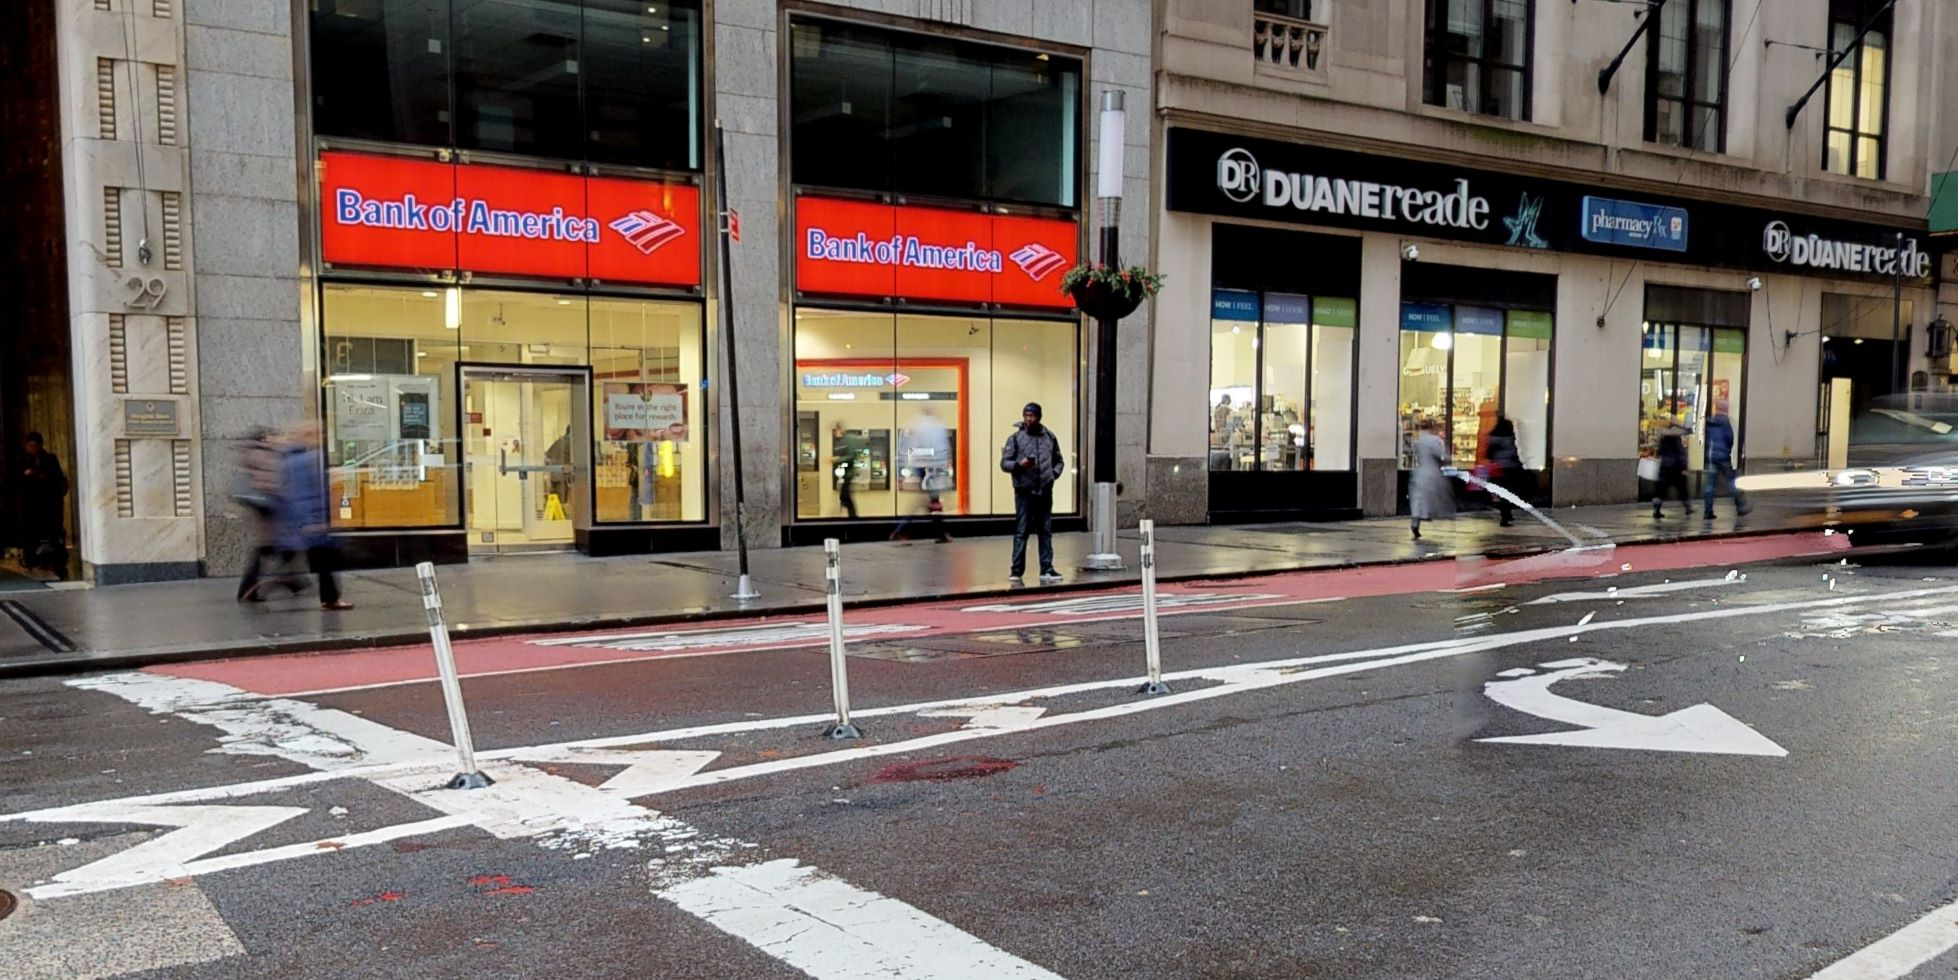 Bank of America financial center with walk-up ATM   29 Broadway, New York, NY 10006